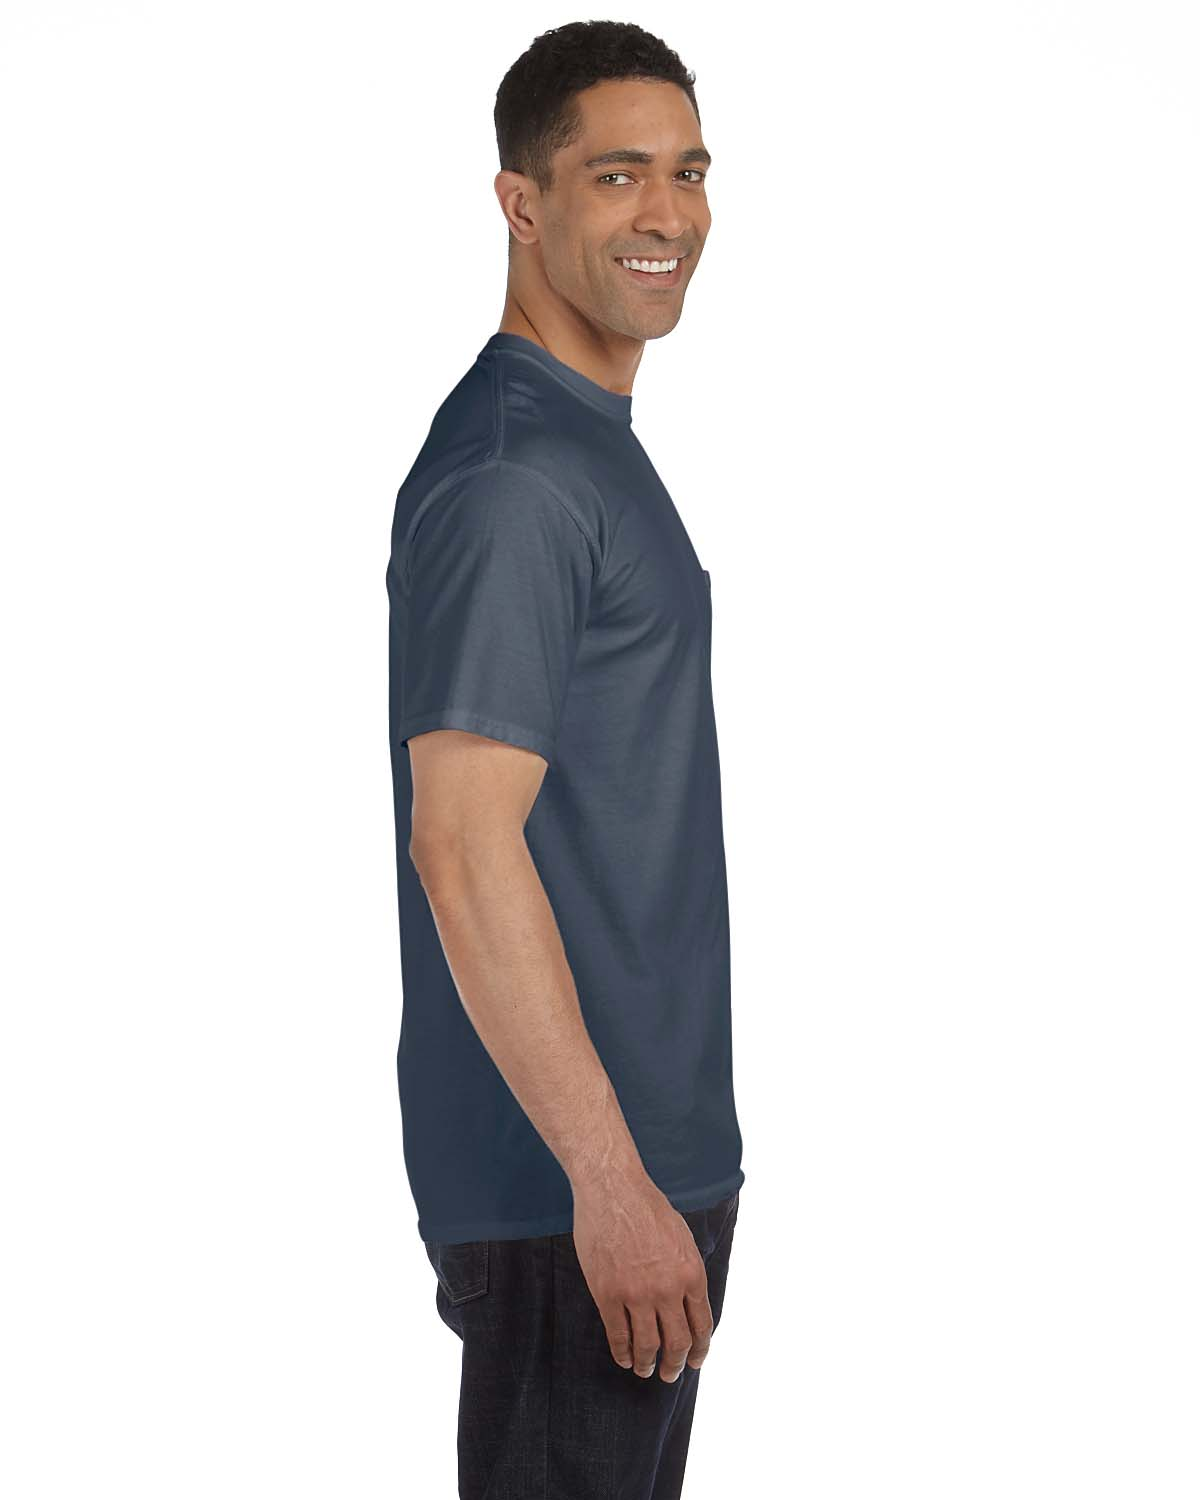 Comfort-Colors-Men-039-s-6-1-oz-Garment-Dyed-Pocket-T-Shirt-6030CC-S-3XL thumbnail 36